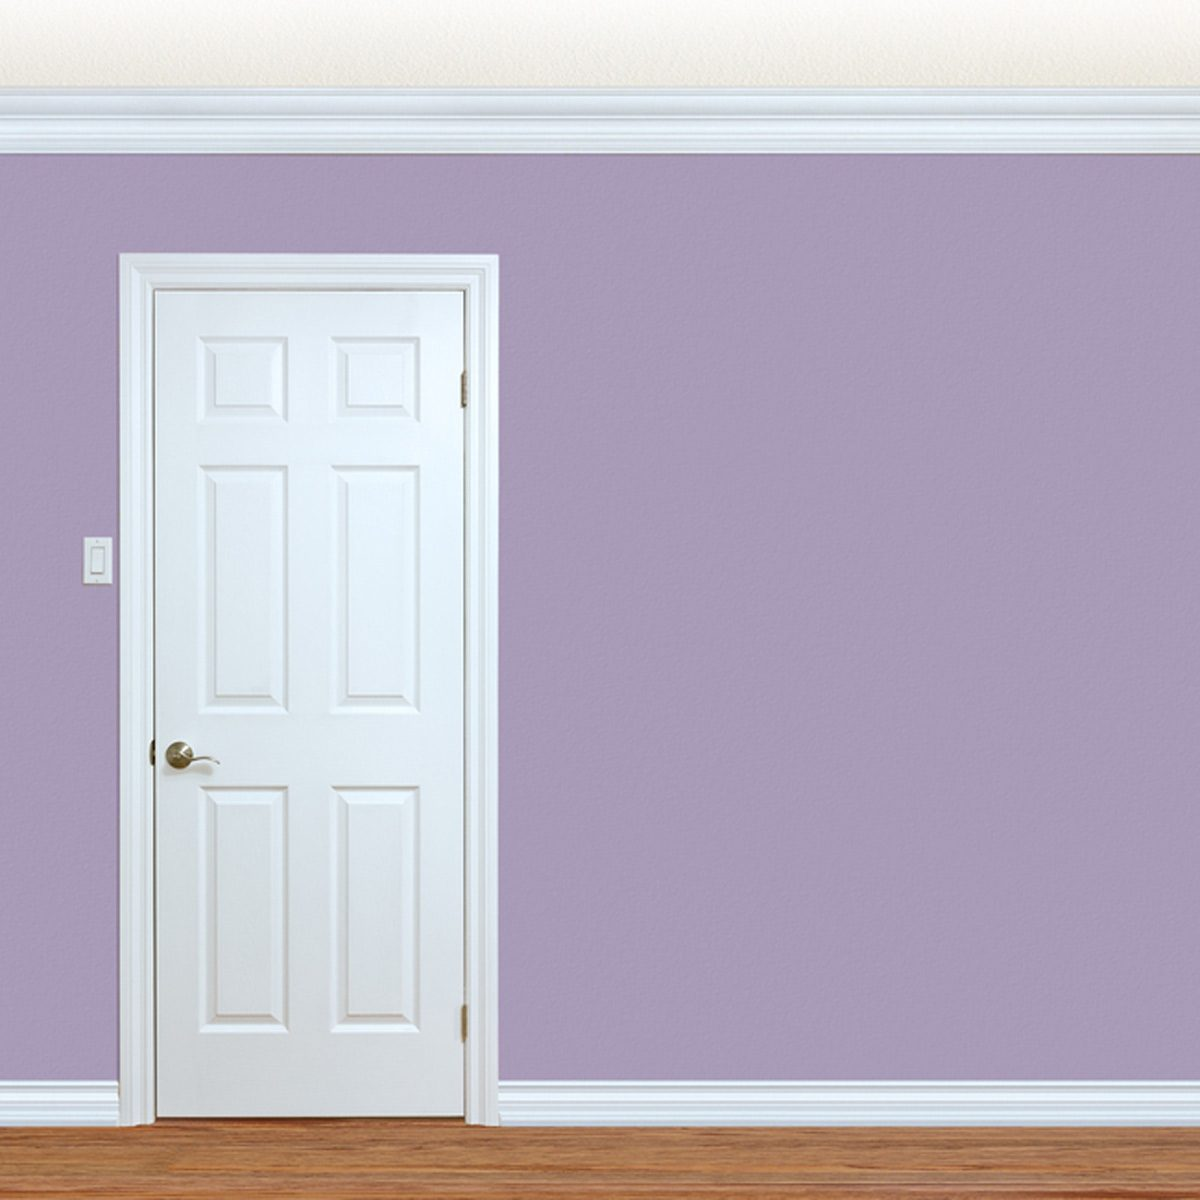 shutterstock_436194085 thin white trim door